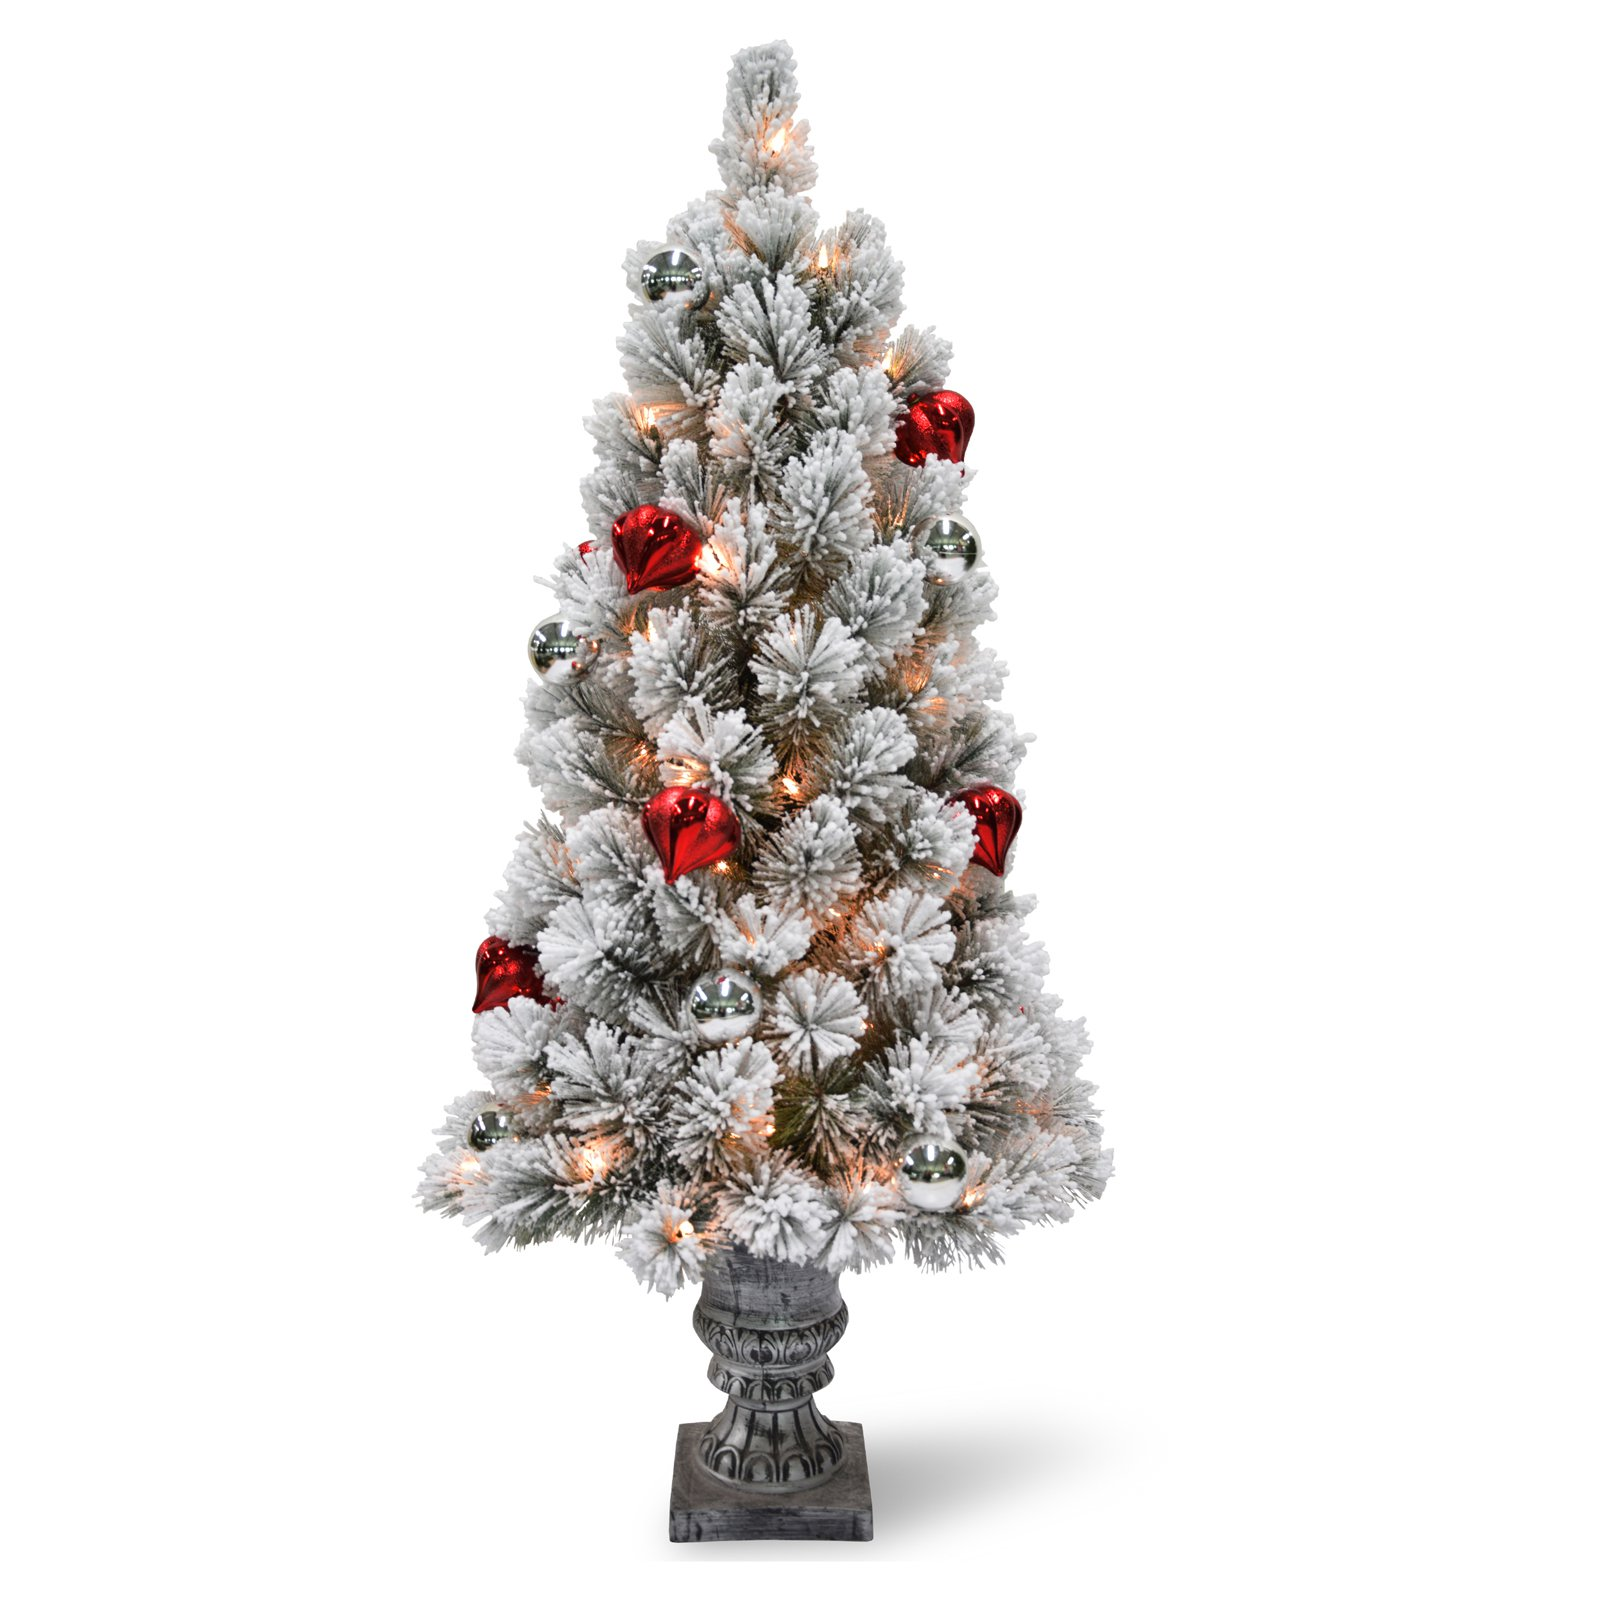 3 ft. Snowy Bristle Pine Tabletop Tree with Battery Operated LED Lights